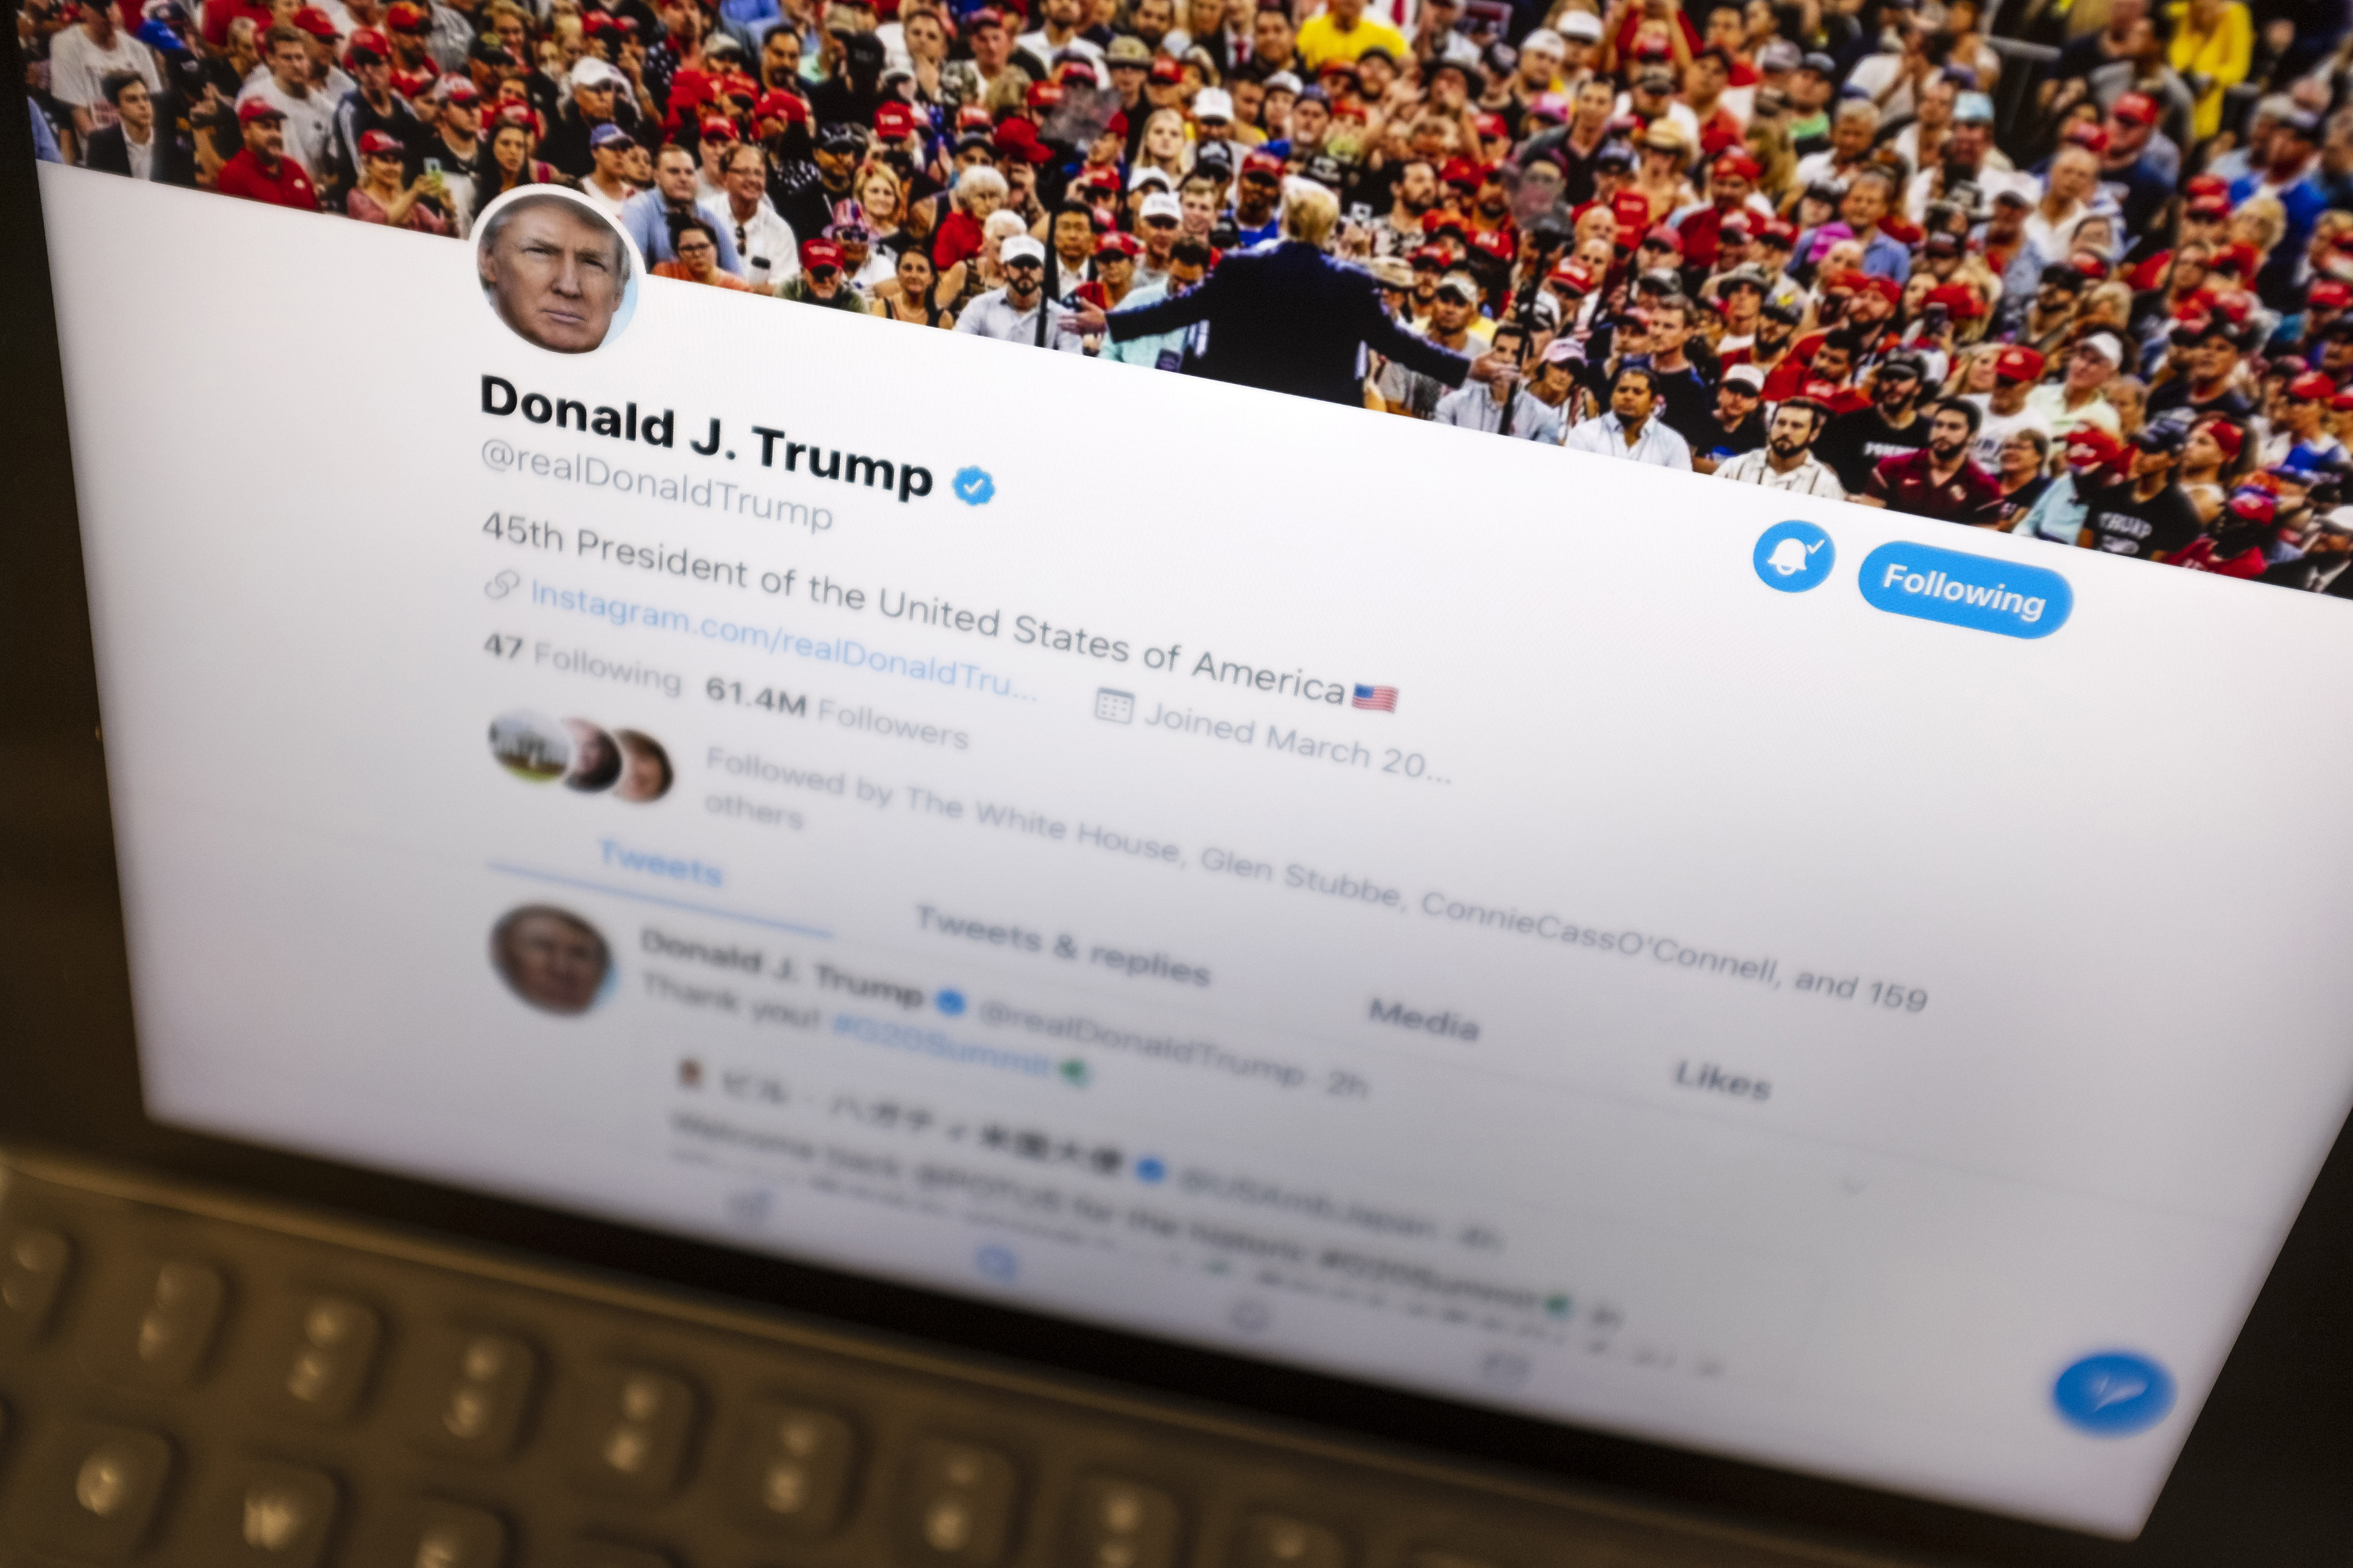 In this June 27, 2019, file photo President Donald Trump's Twitter feed is photographed on an Apple iPad in New York.